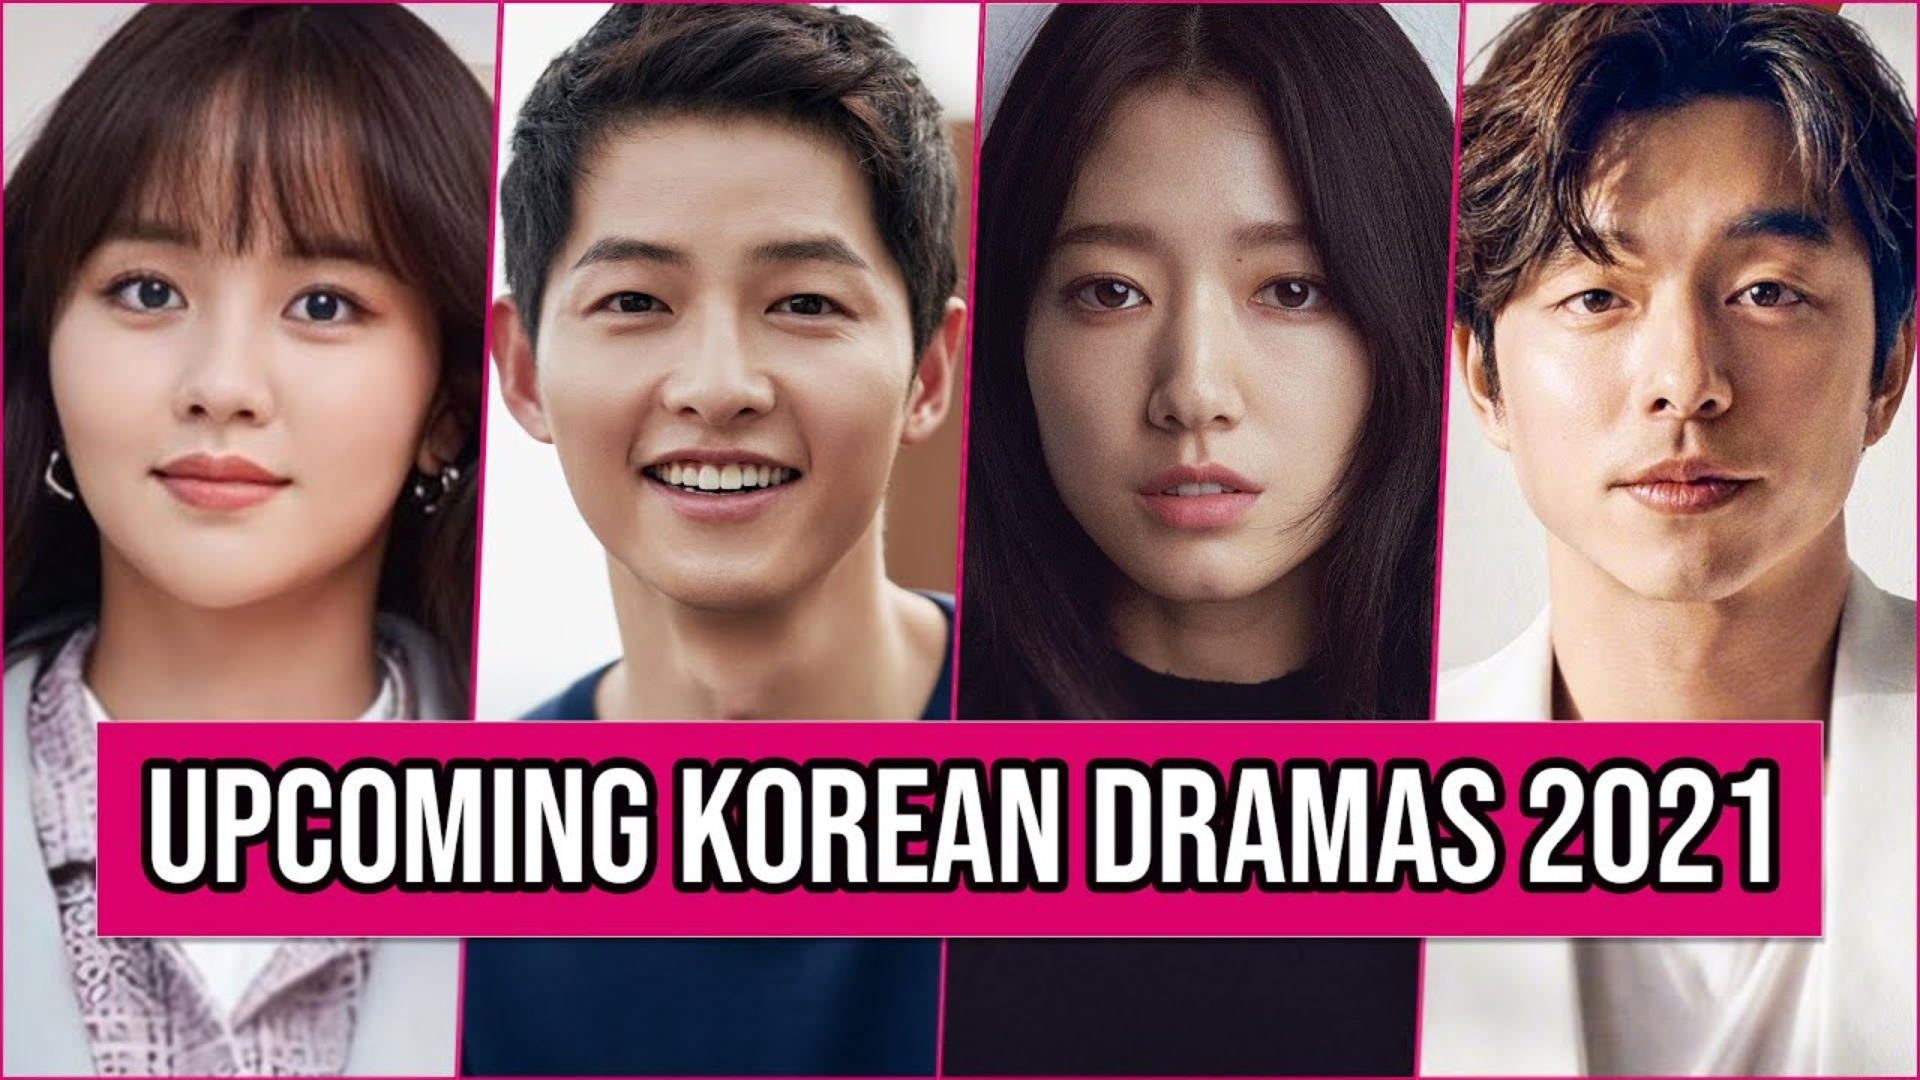 Korean television series or Korean drama (Korean: ?????; Hanja: ?????; RR: han-guk deurama), more popularly known as K-dramas, are television series in the Korean language, made in South Korea. Korean dramas are popular worldwide, partially due to the spread of Korean popular culture (the